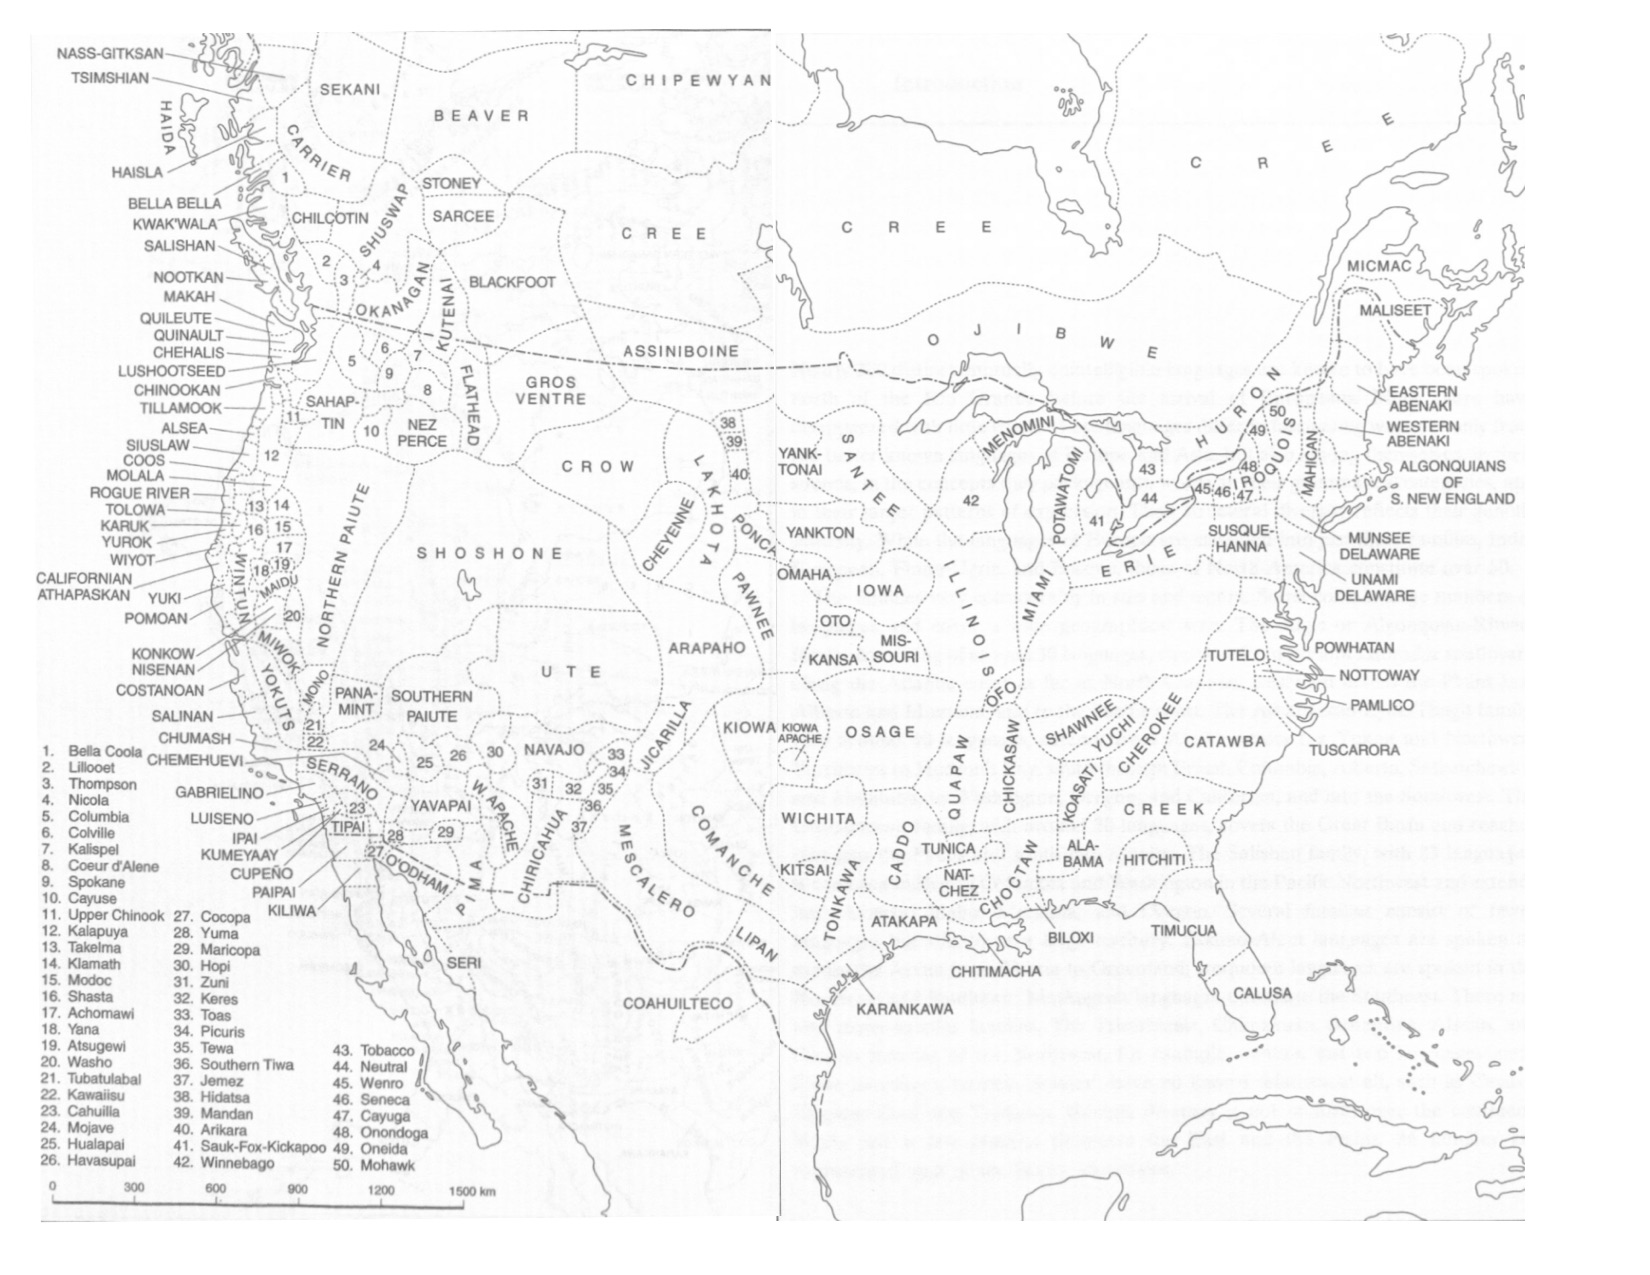 Map of America showing the many language groups prior to colonization by Europeans